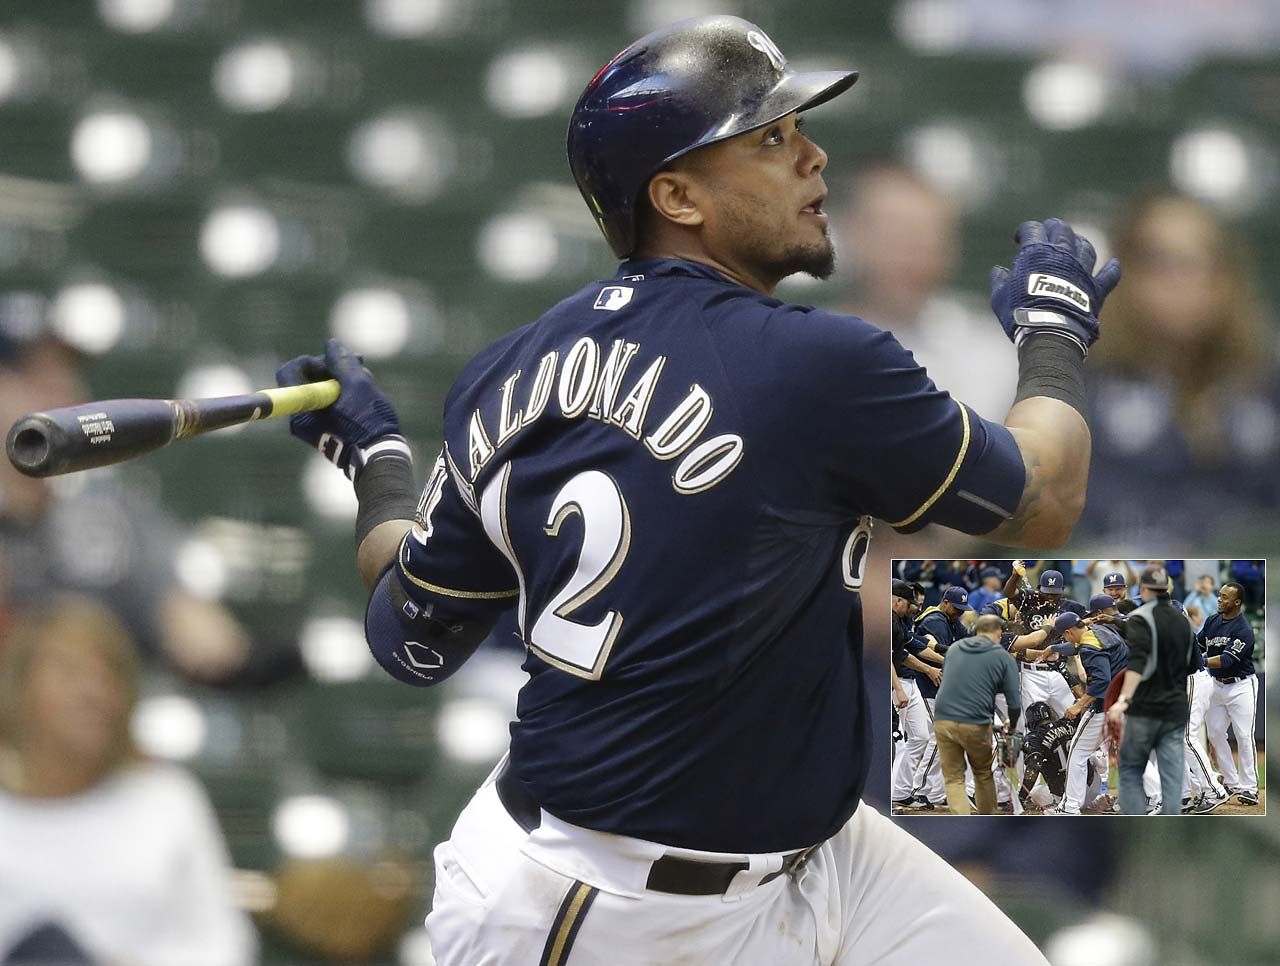 In a game that went 17 innings, Martin Maldonado delivered the closing blow with a game-winning homer that gave Milwaukee a 7-6 win over the Arizona Diamondbacks on May 31.